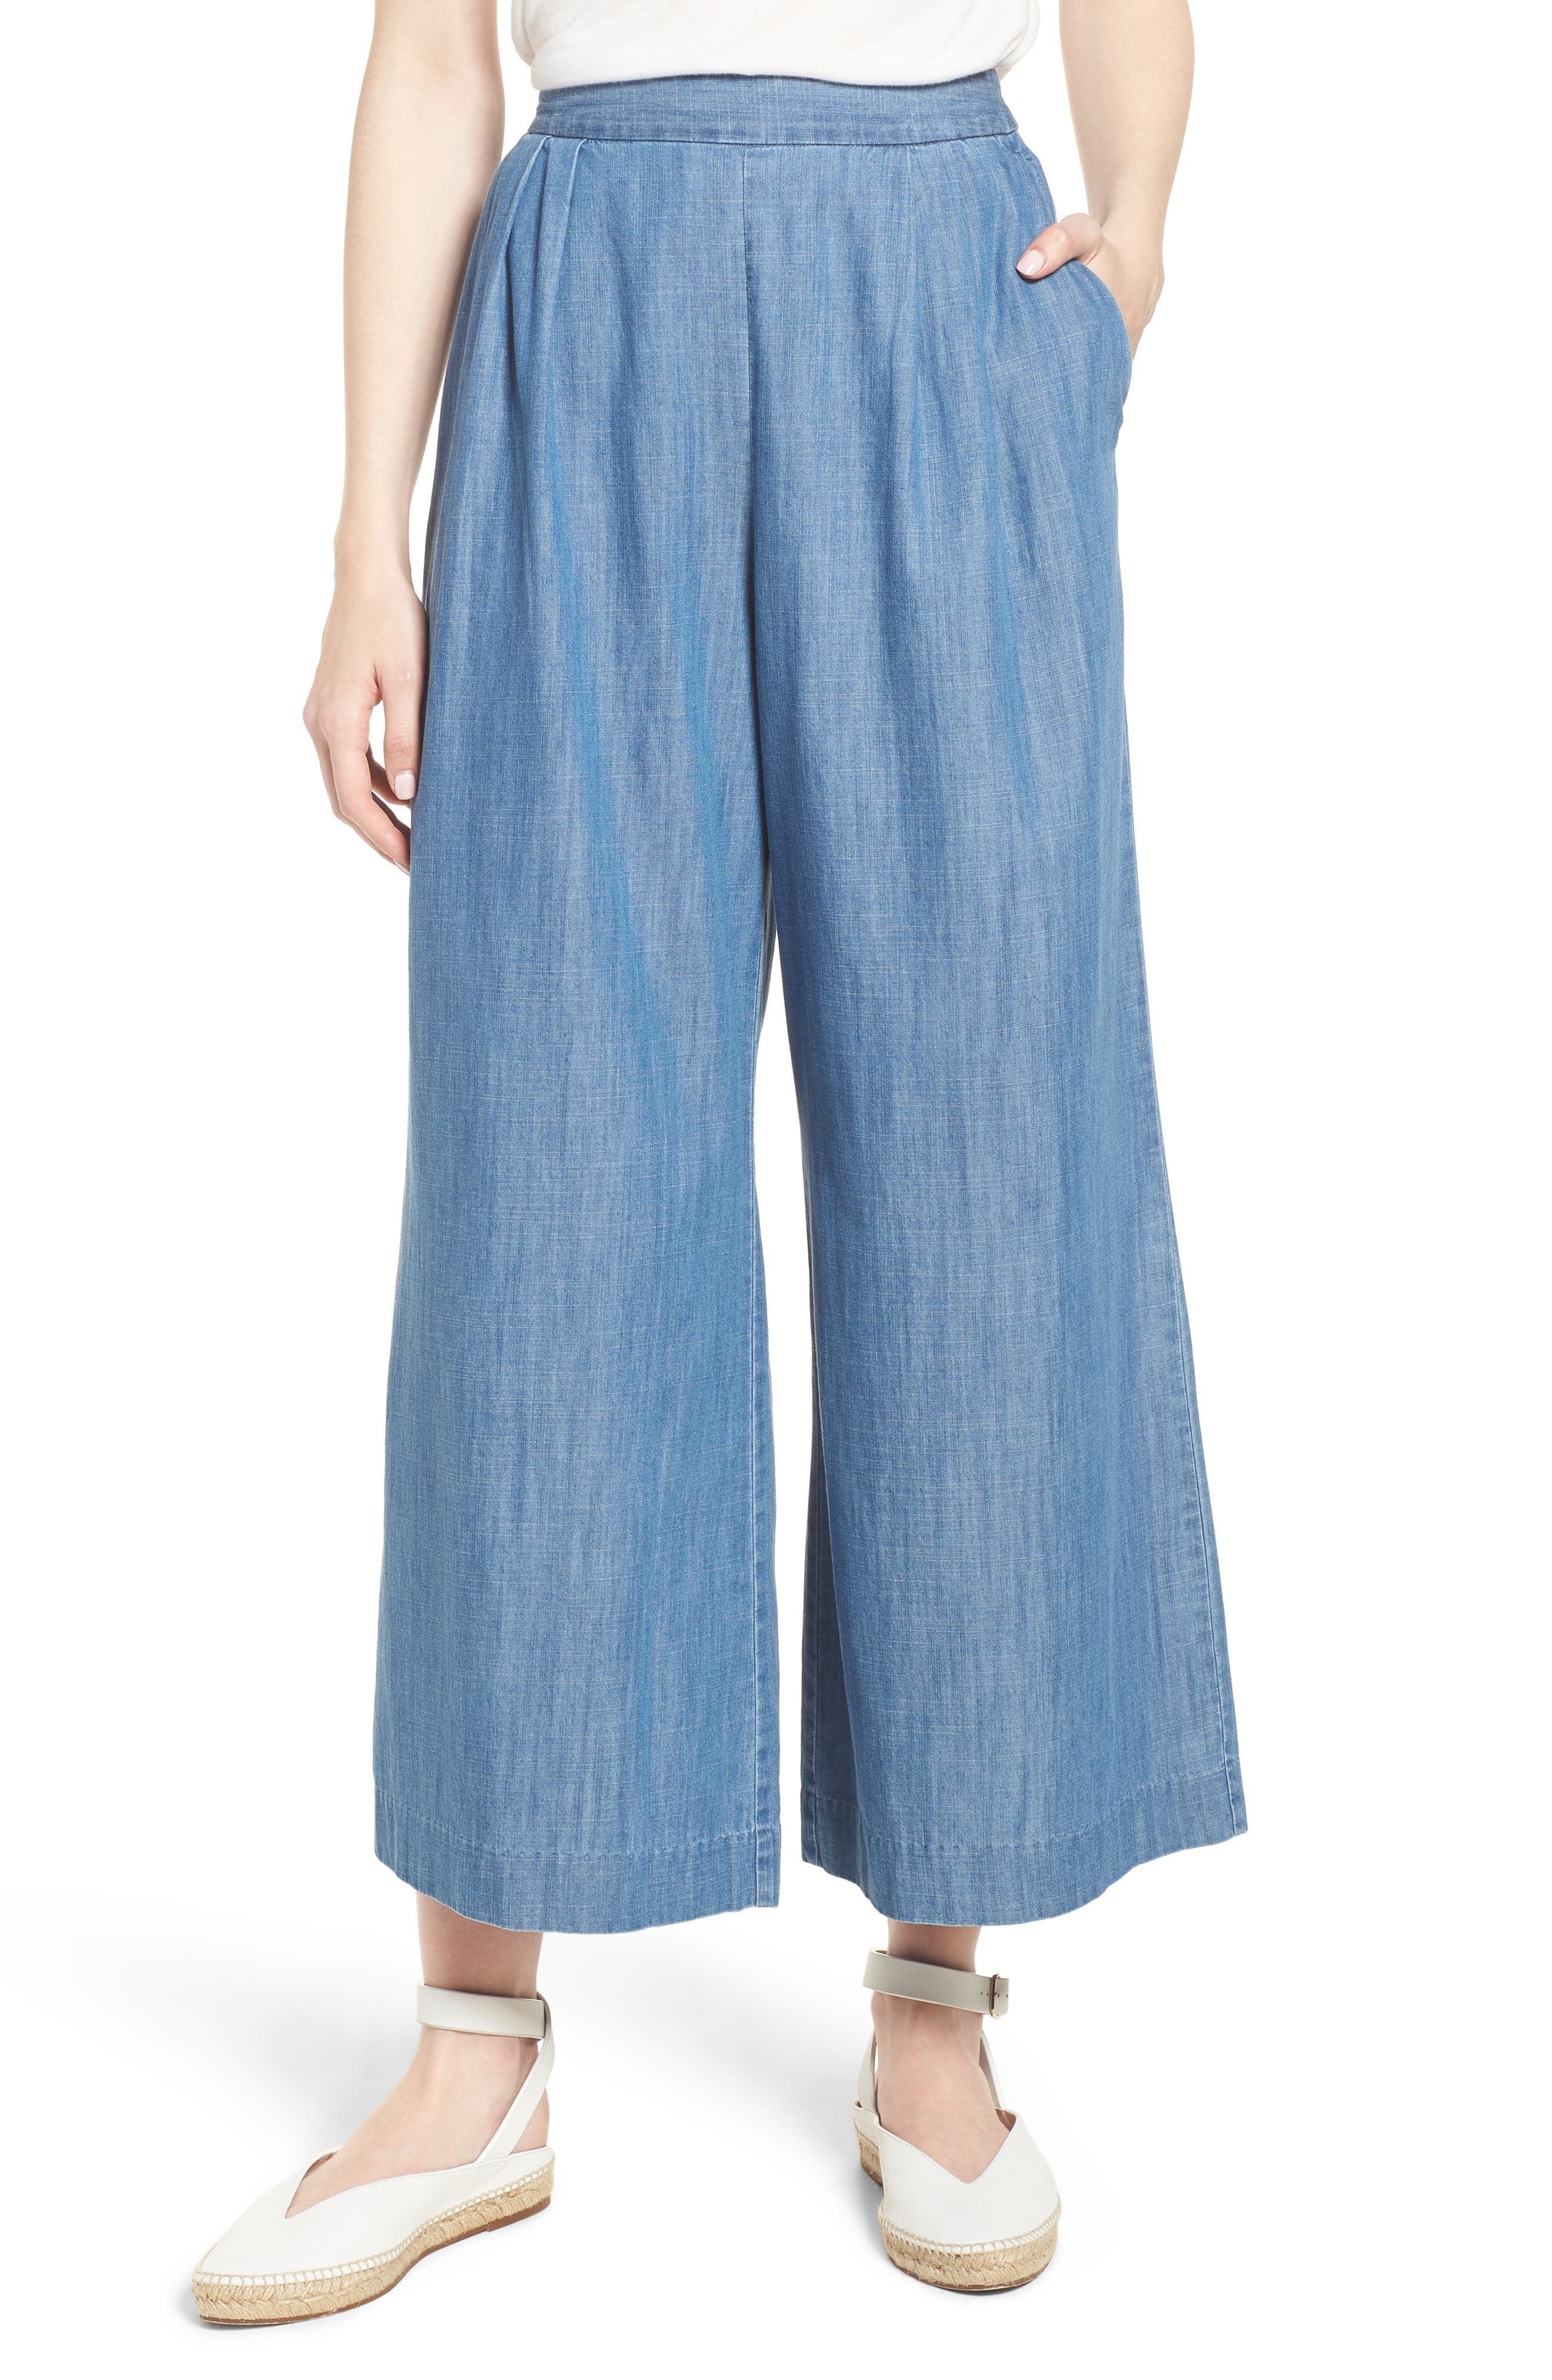 J.Crew Wide Leg Crop Chambray Pants (Regular & Petite)